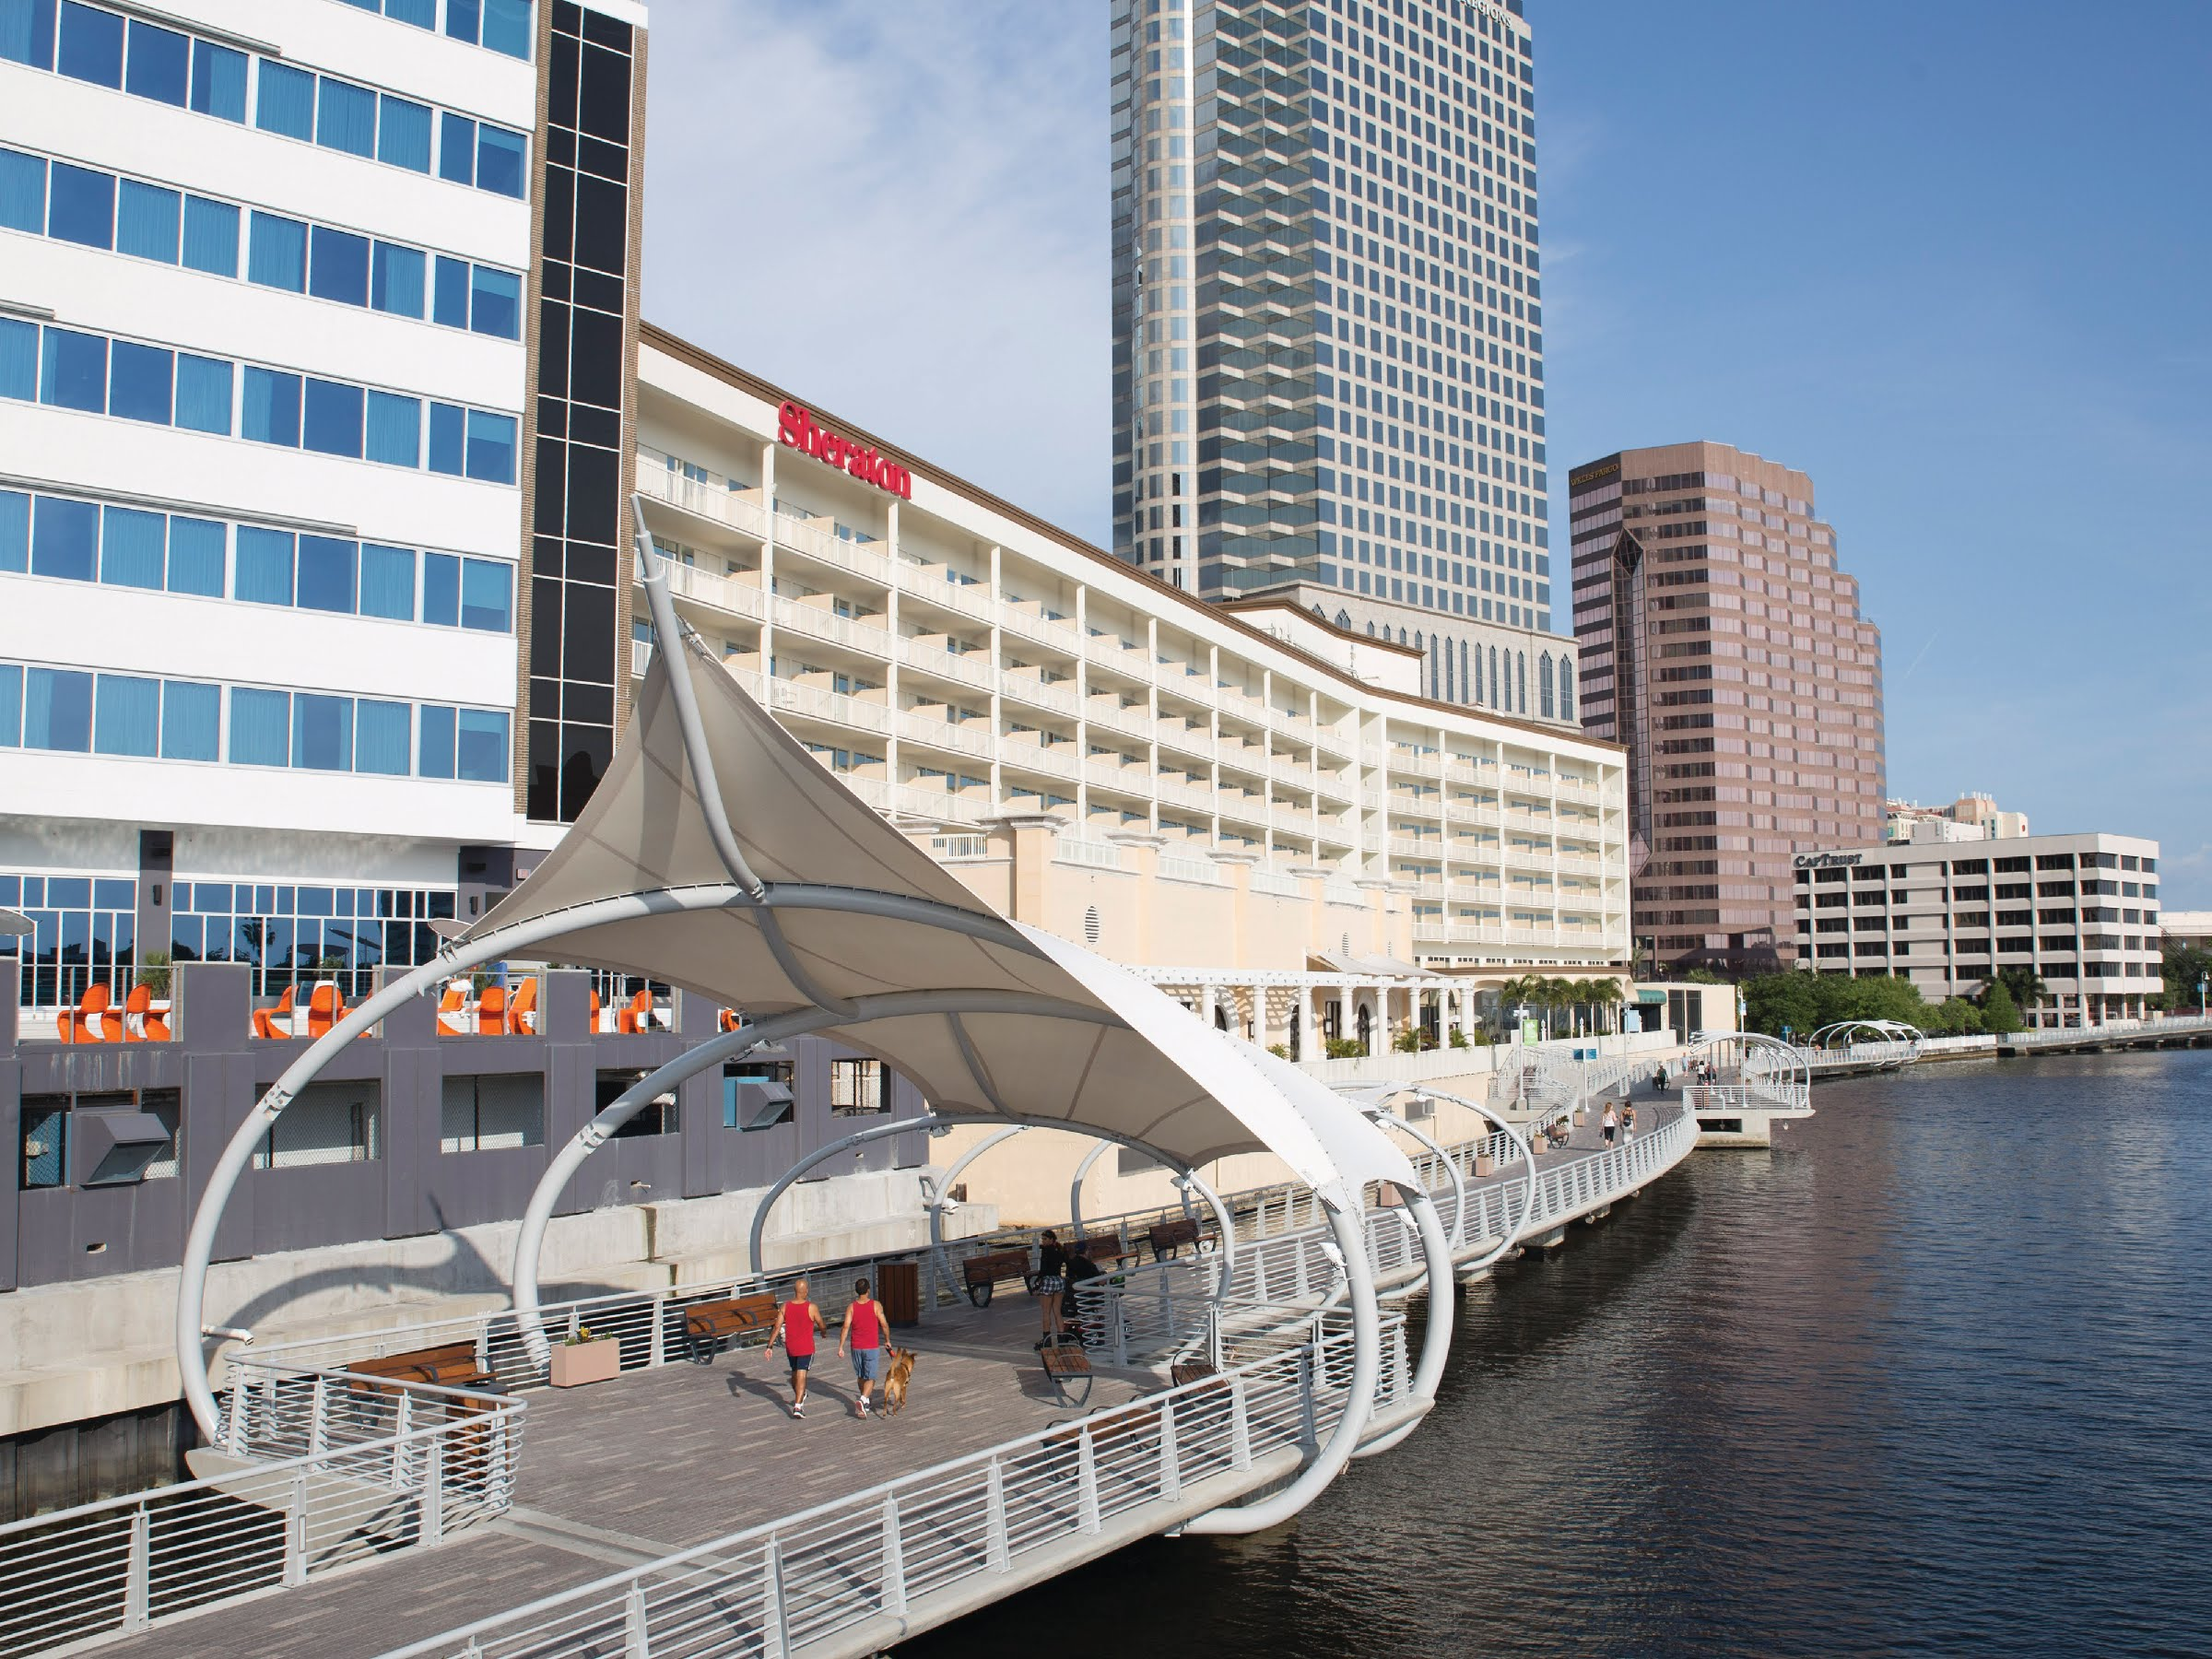 Swoop | a picture of the Tampa riverwalk